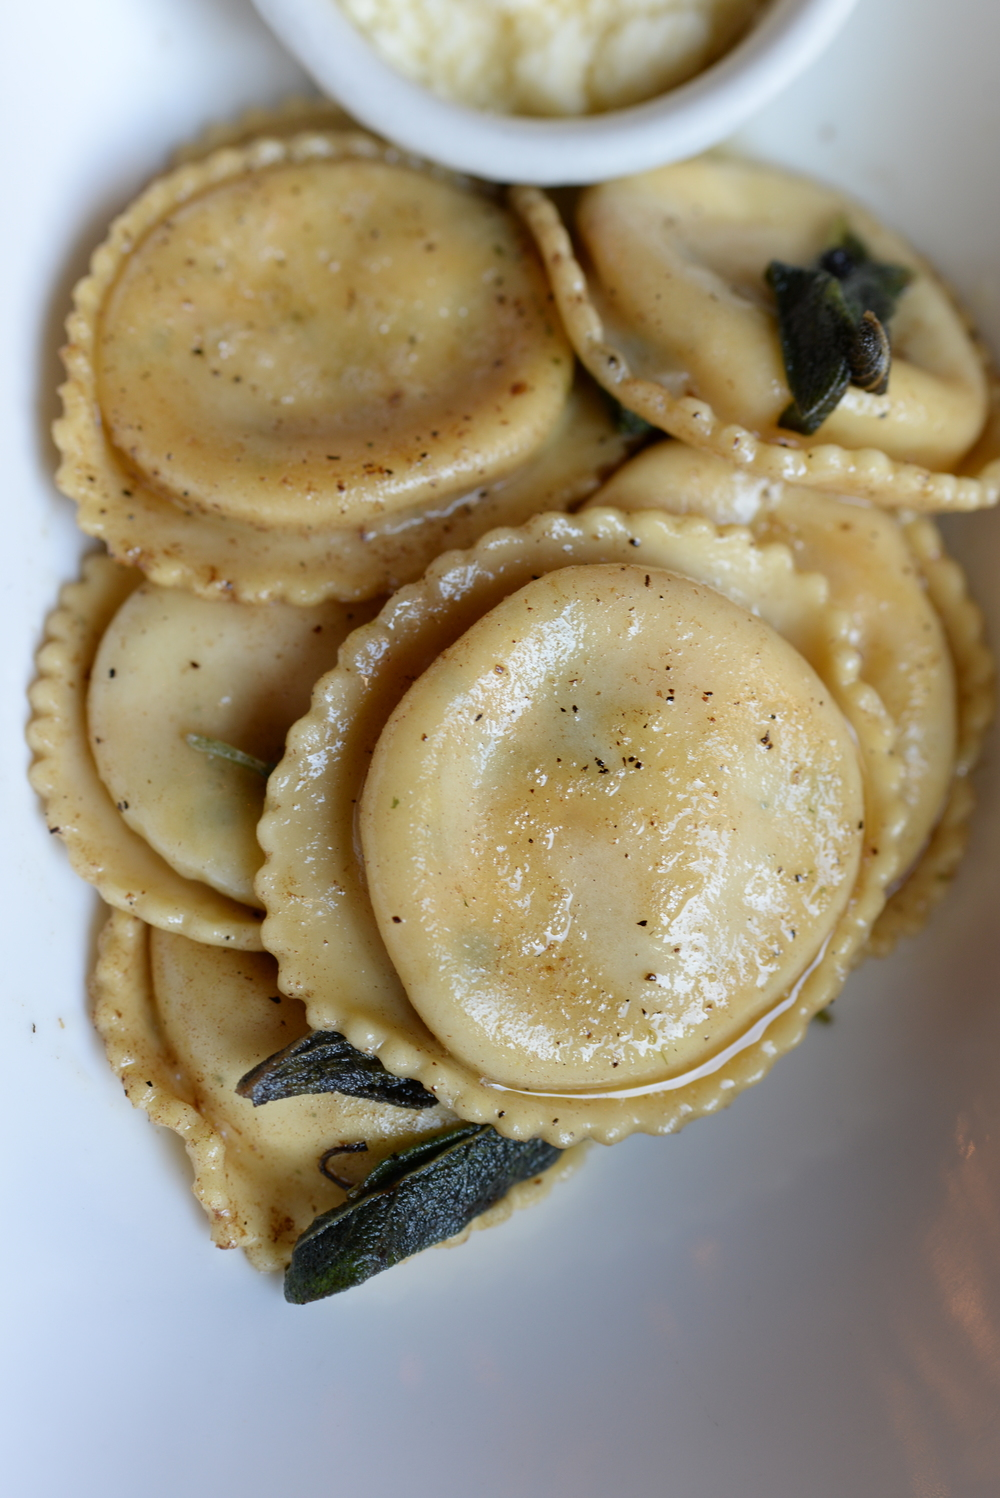 Broccoli Rabe Ravioli